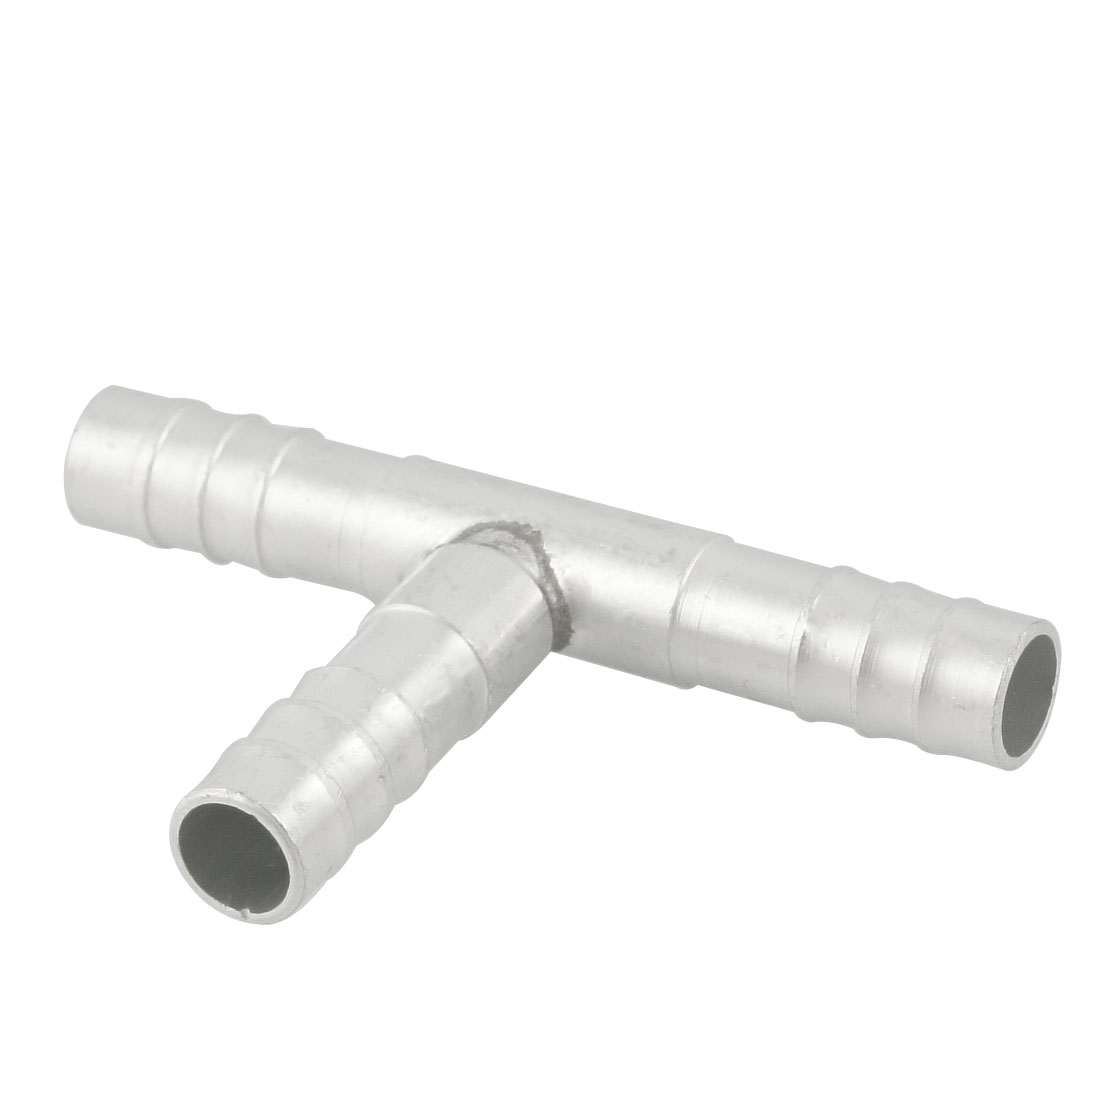 11mm Inner Dia Barbed Pipe Connector Tee Tubing Fitting Adapter